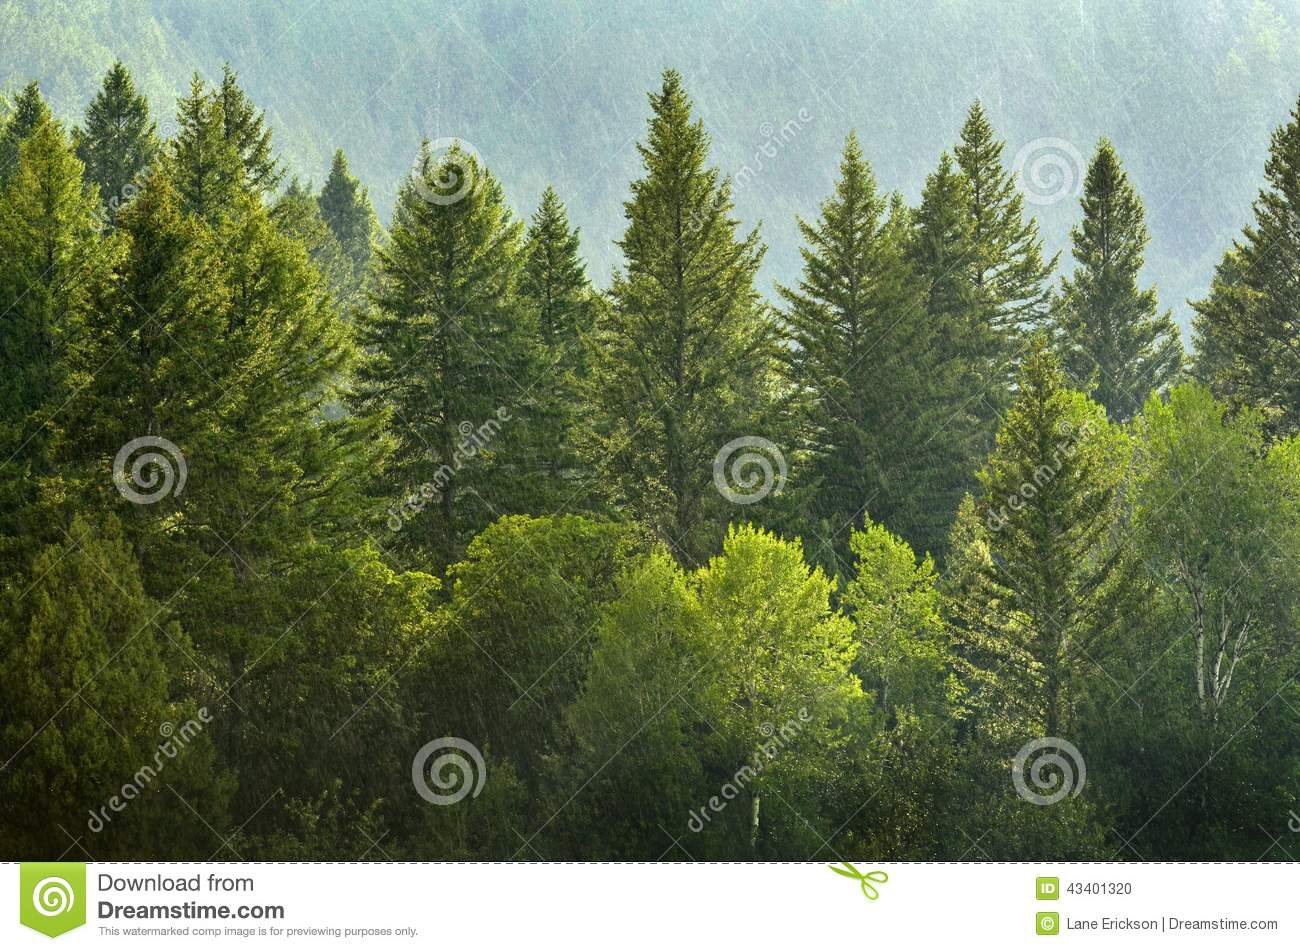 Forrest of Pine Trees in Rain